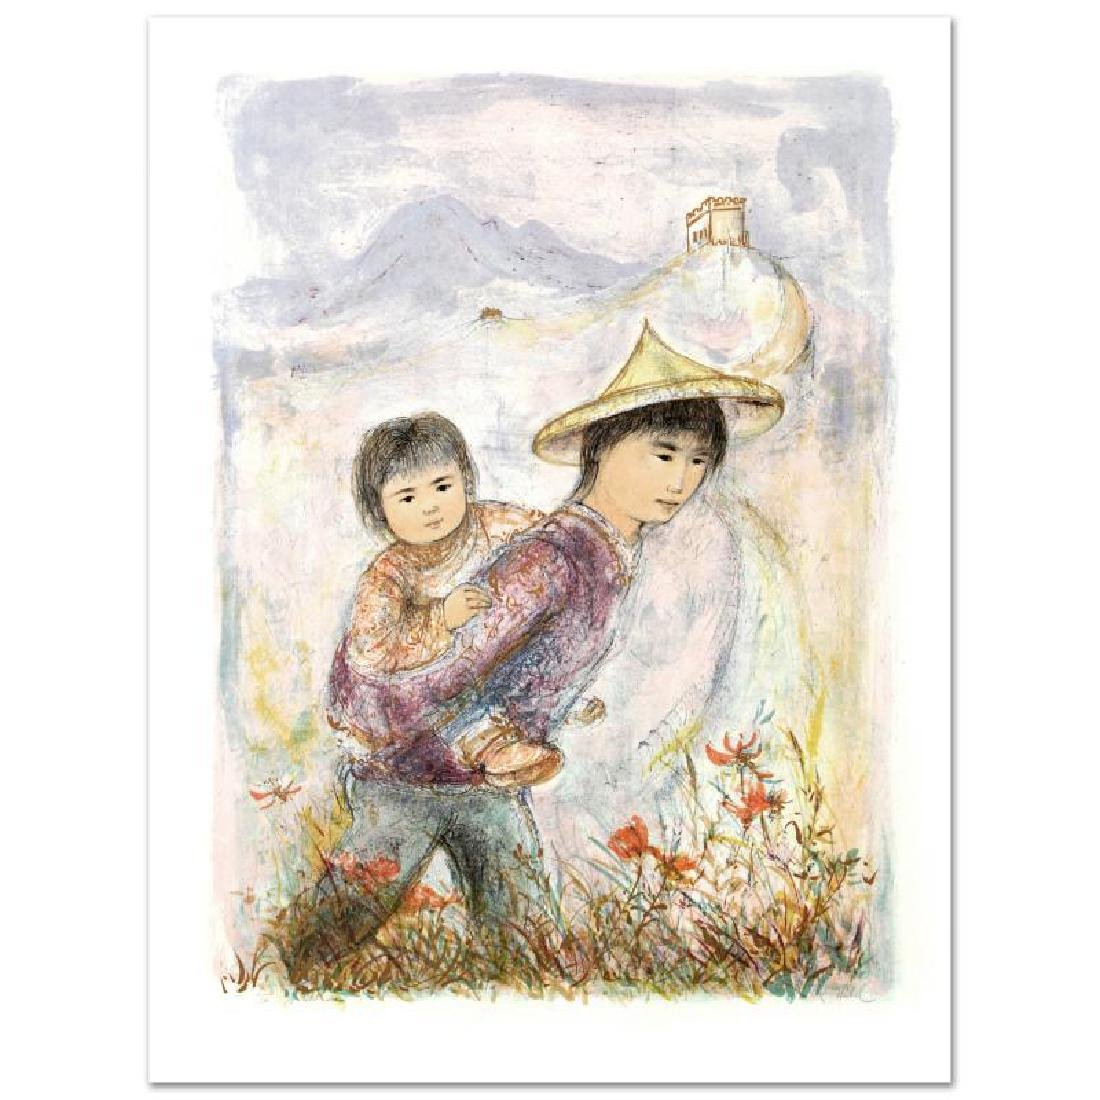 """The Great Wall"" Limited Edition Lithograph by Edna"